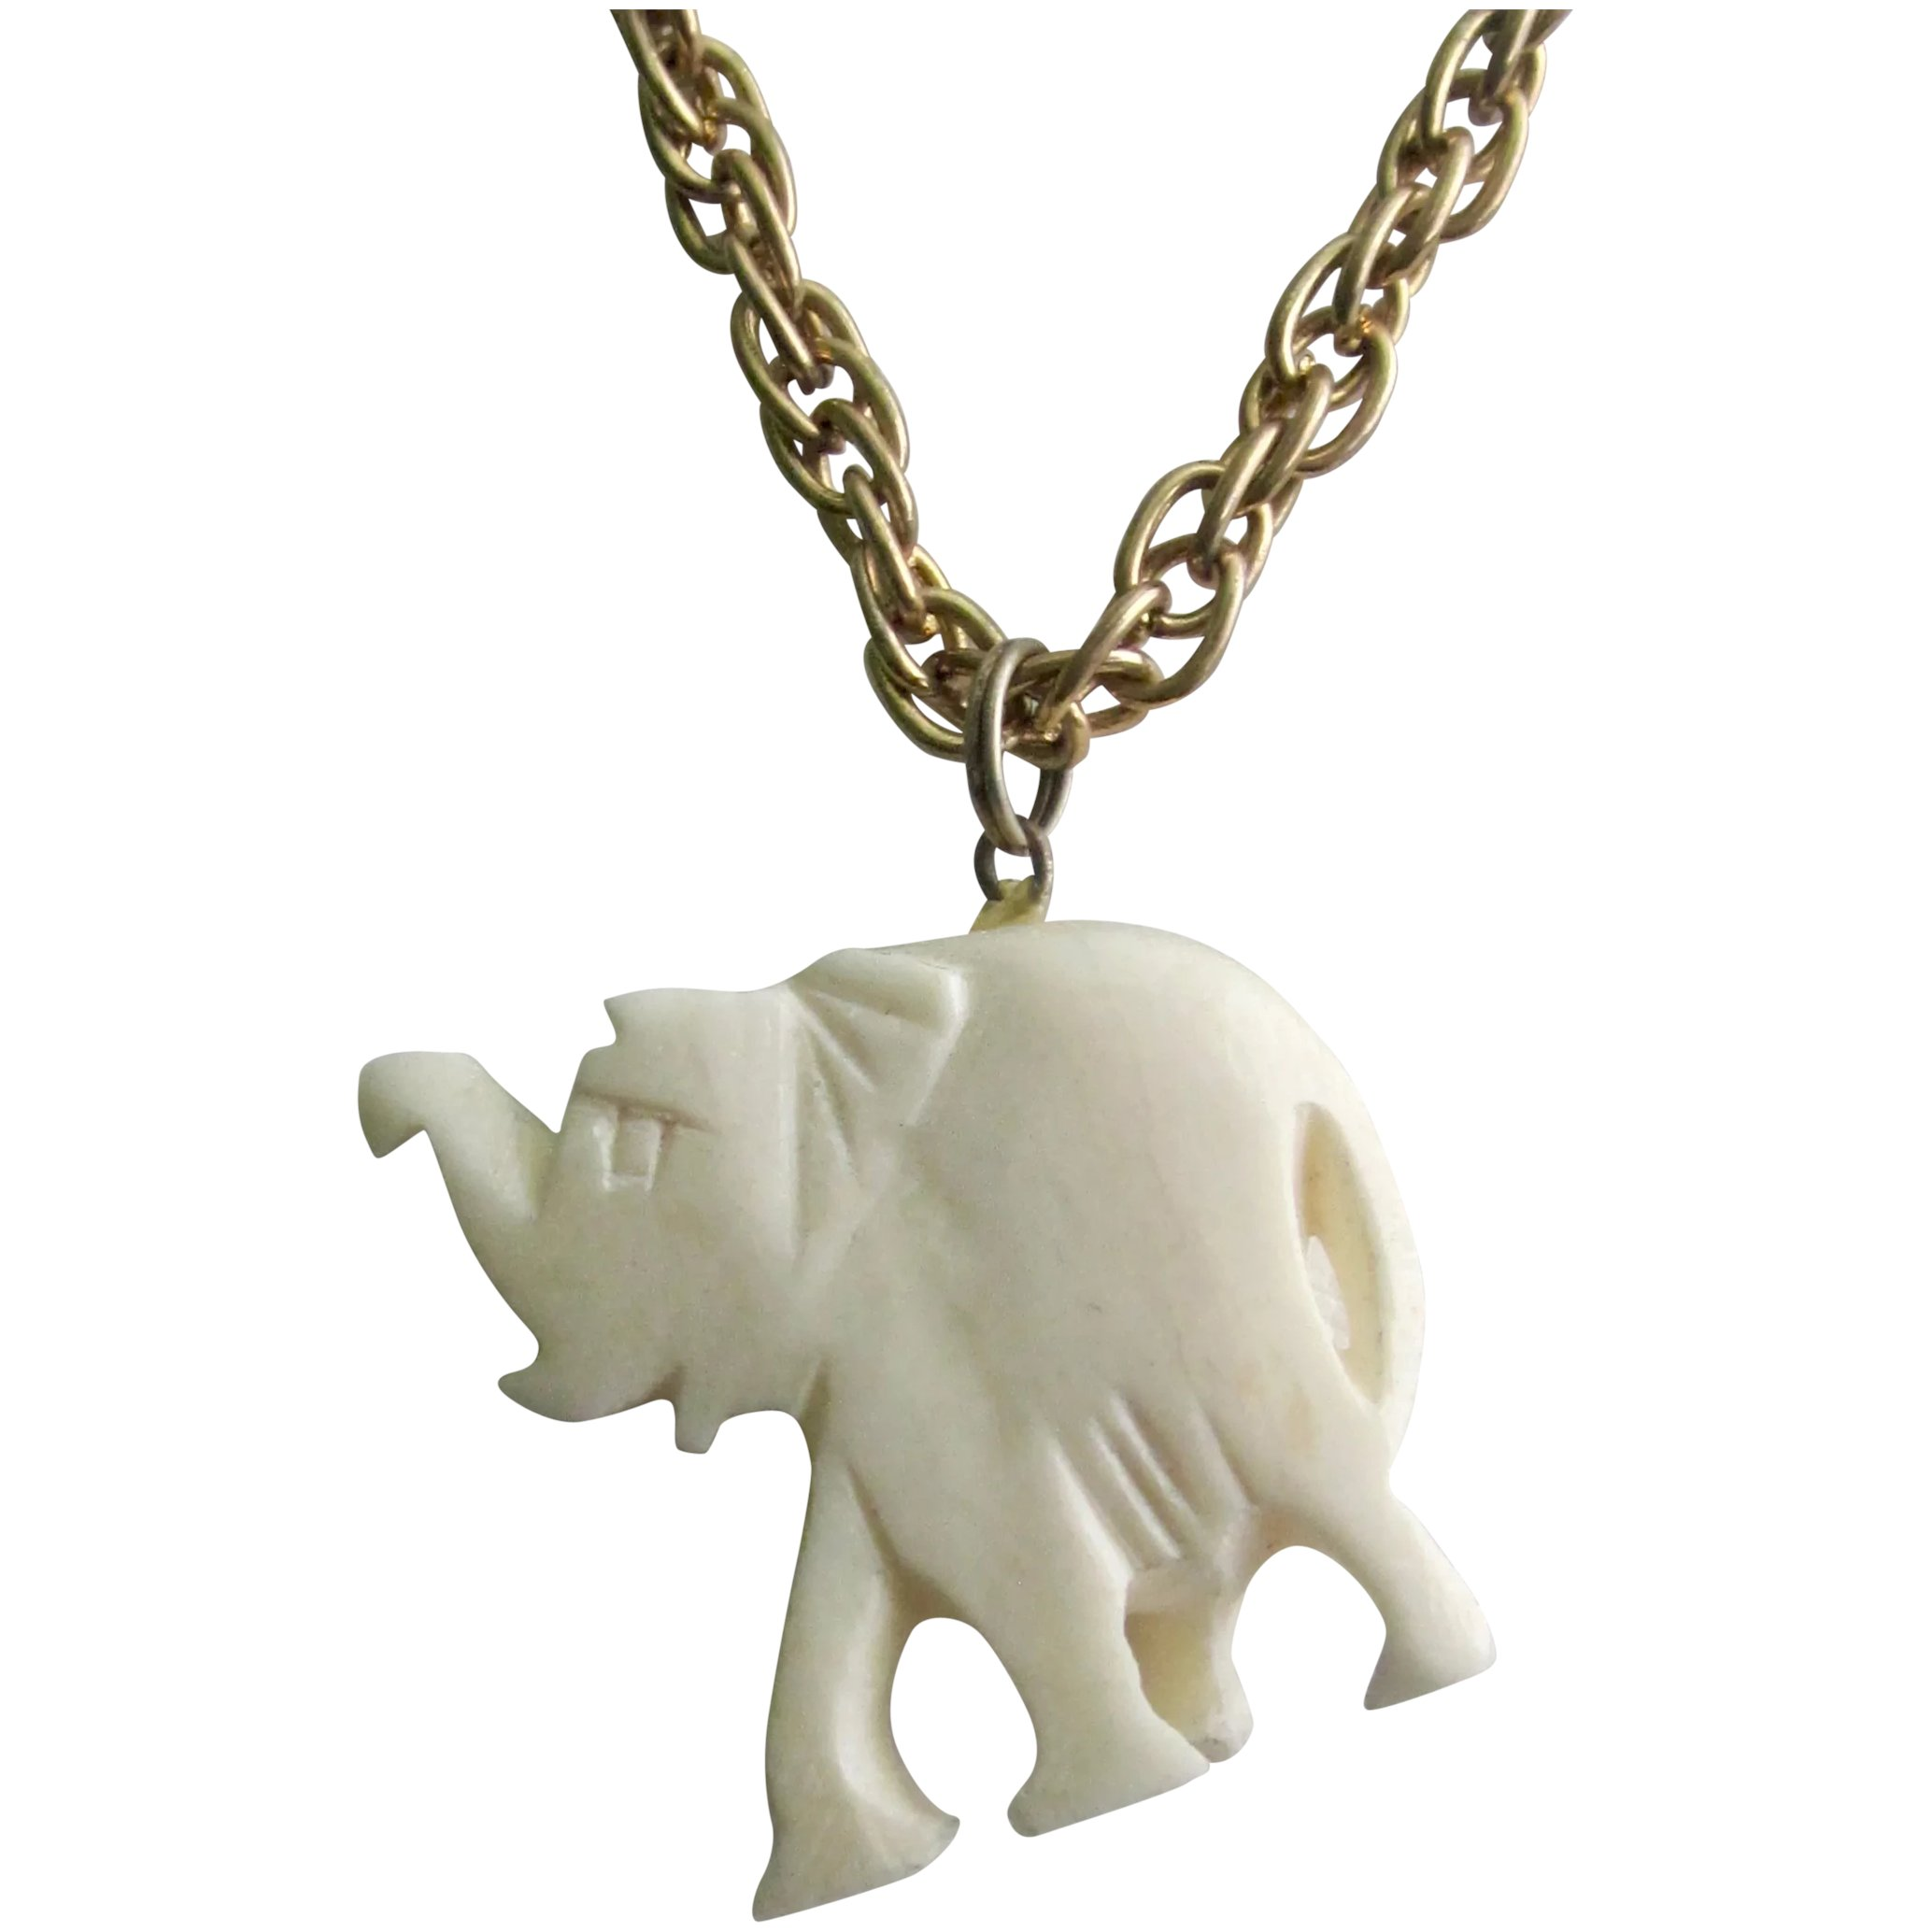 Jewelry Watches Necklaces Pendants Elephants Group Bone Hand Carving Pendant W Antique Color Sterling Silver Bale Sraparish Org